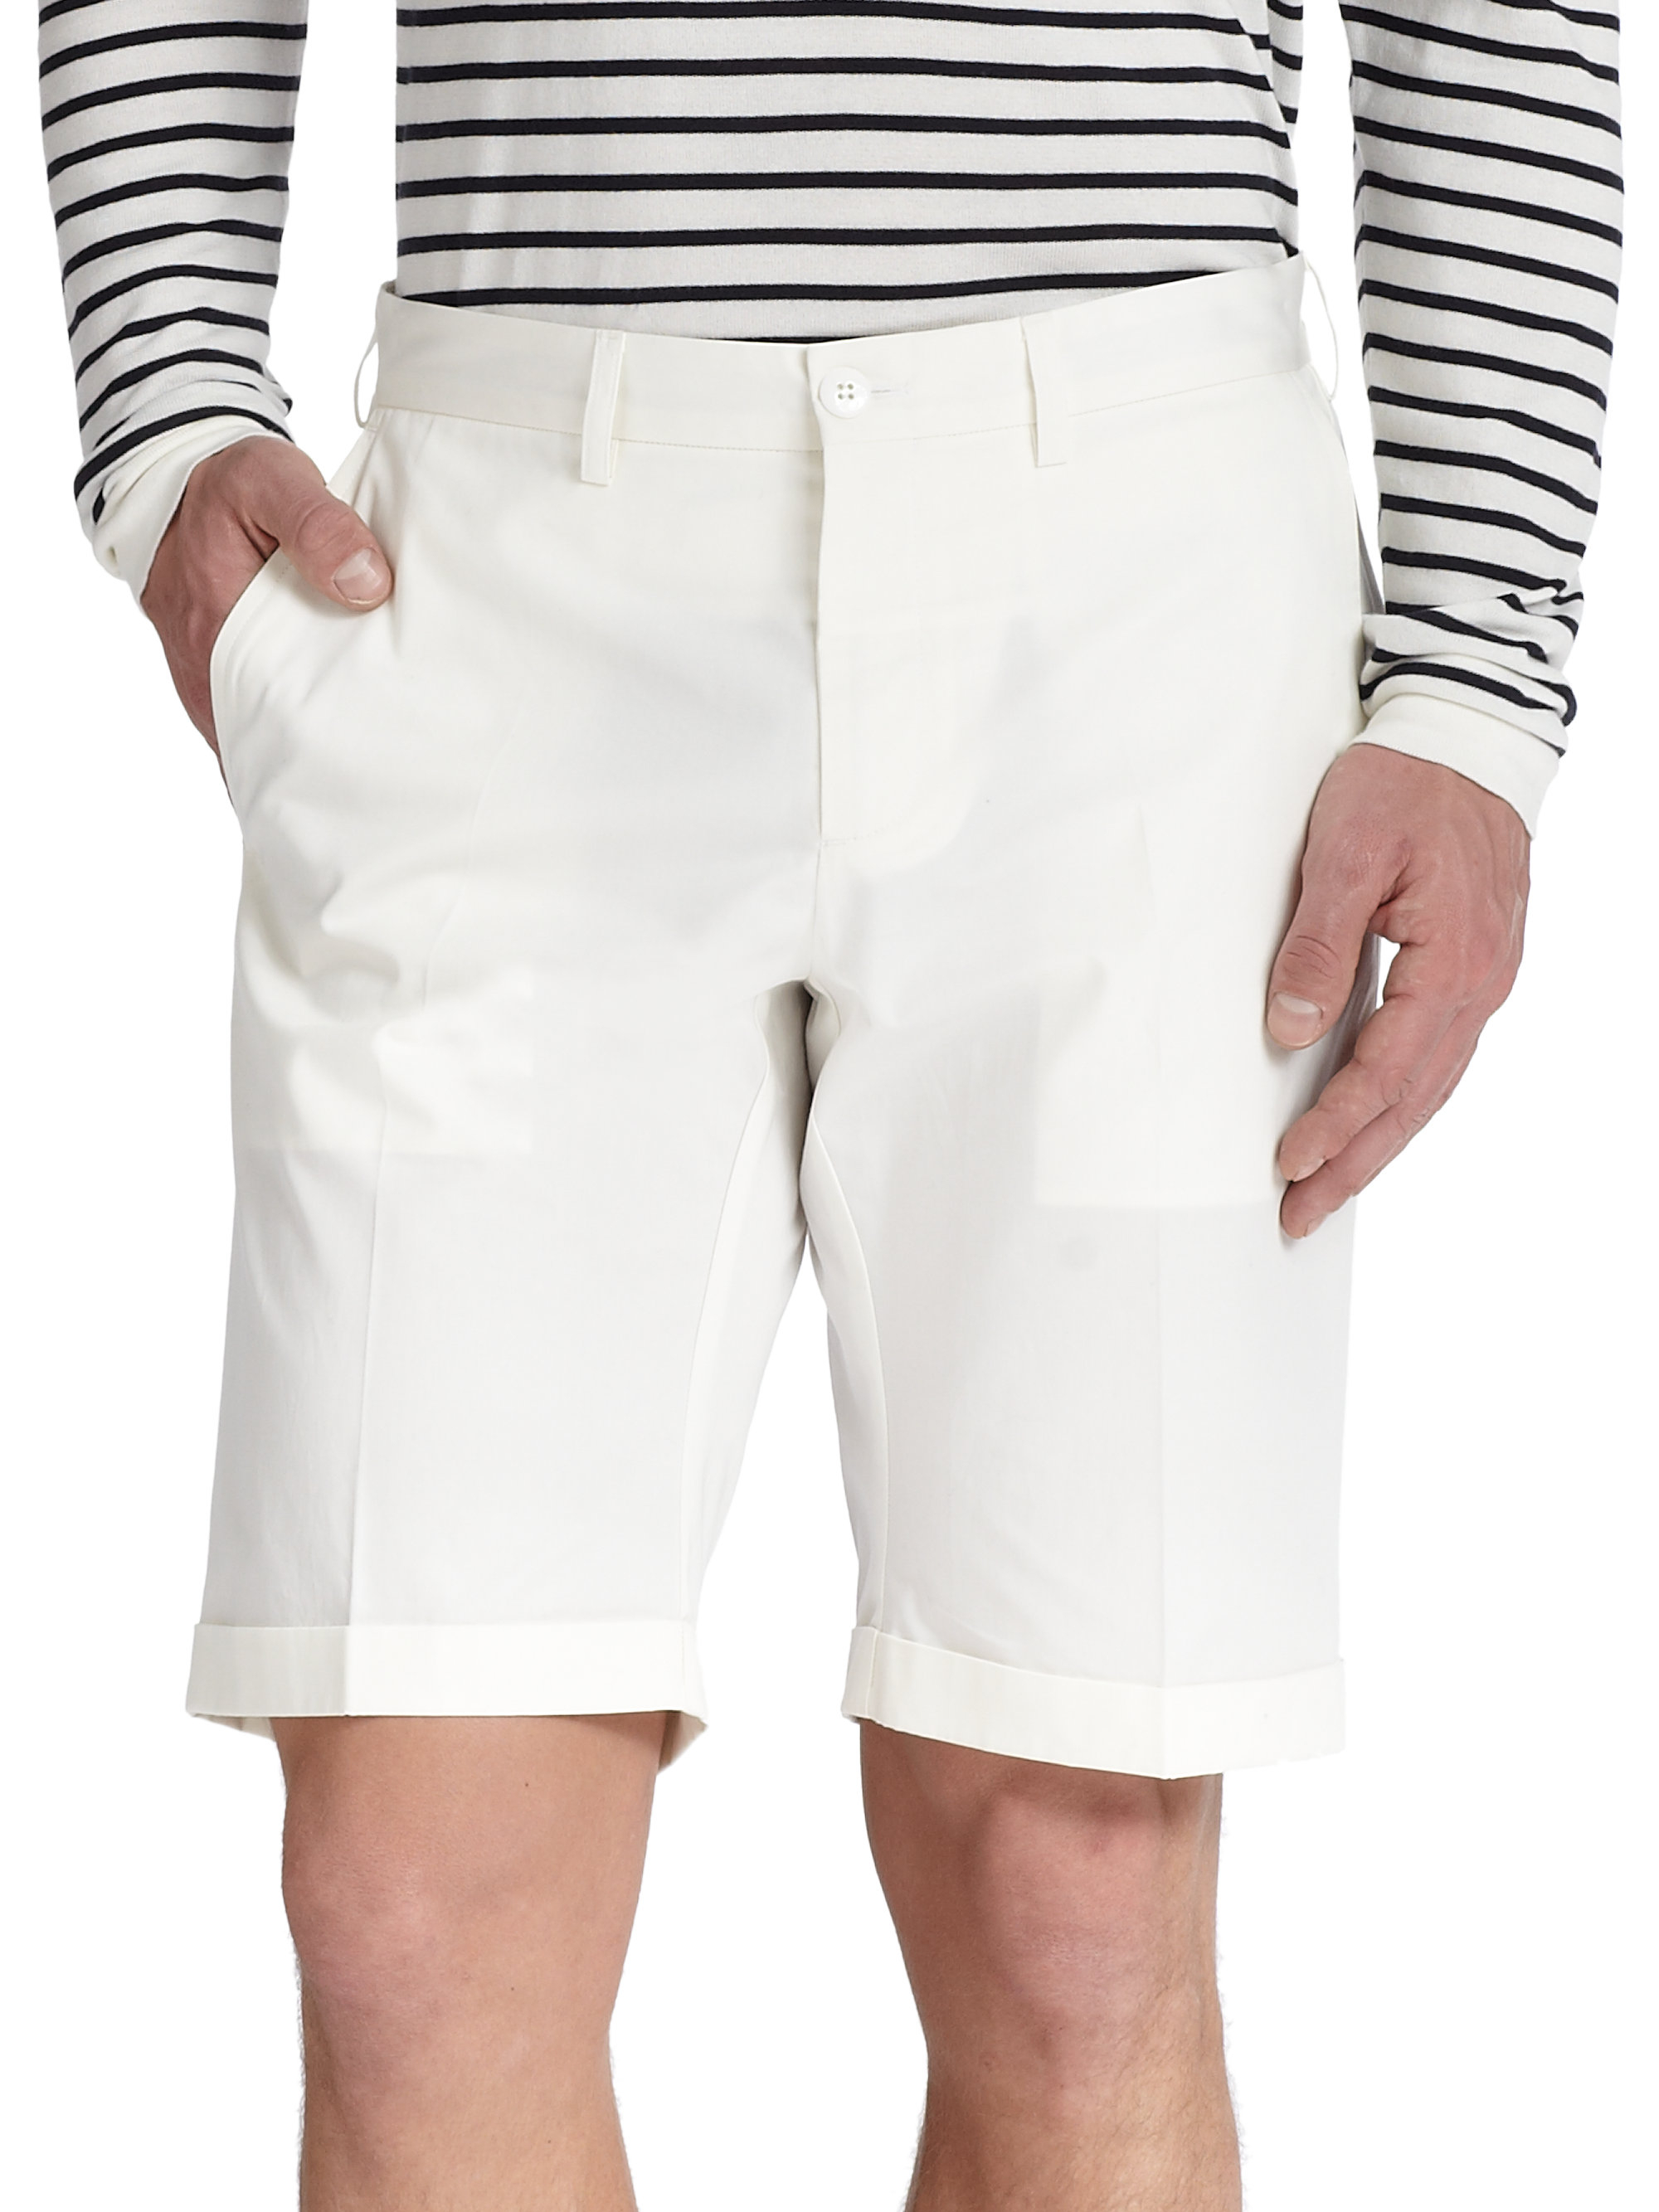 Shop for women's white shorts at r0nd.tk Next day delivery and free returns available. s of products online. Buy women's white shorts now!